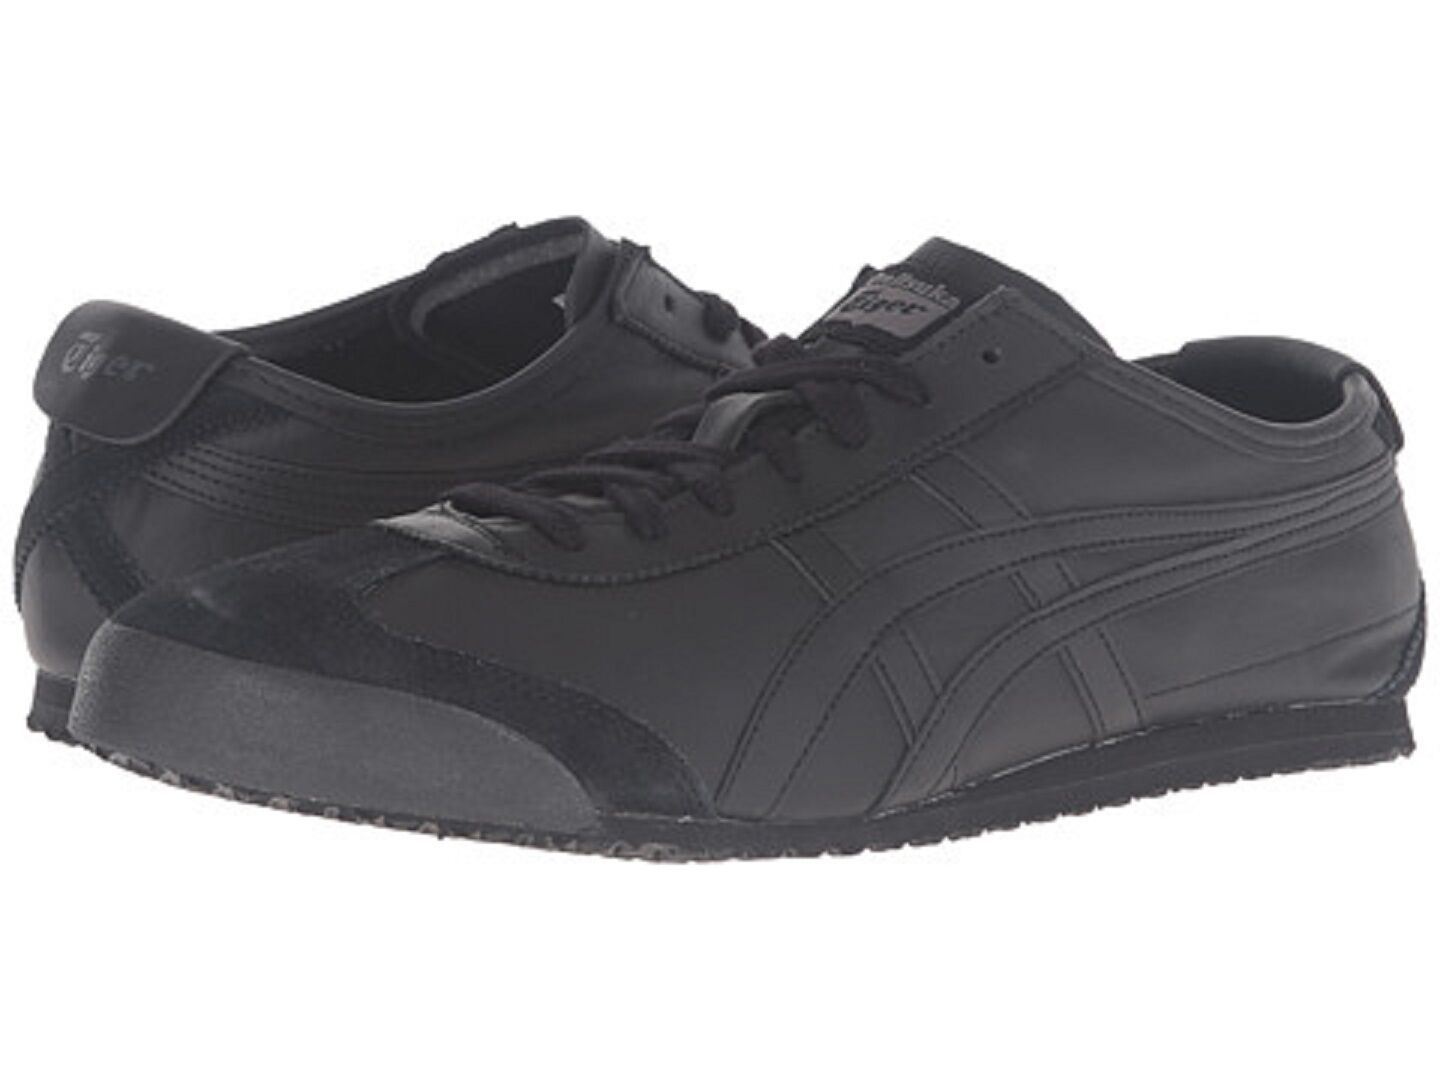 ONITSUKA TIGER D4J2L.9090 MEXICO 66 Mn's (M) Black Leather Suede Lifestyle shoes